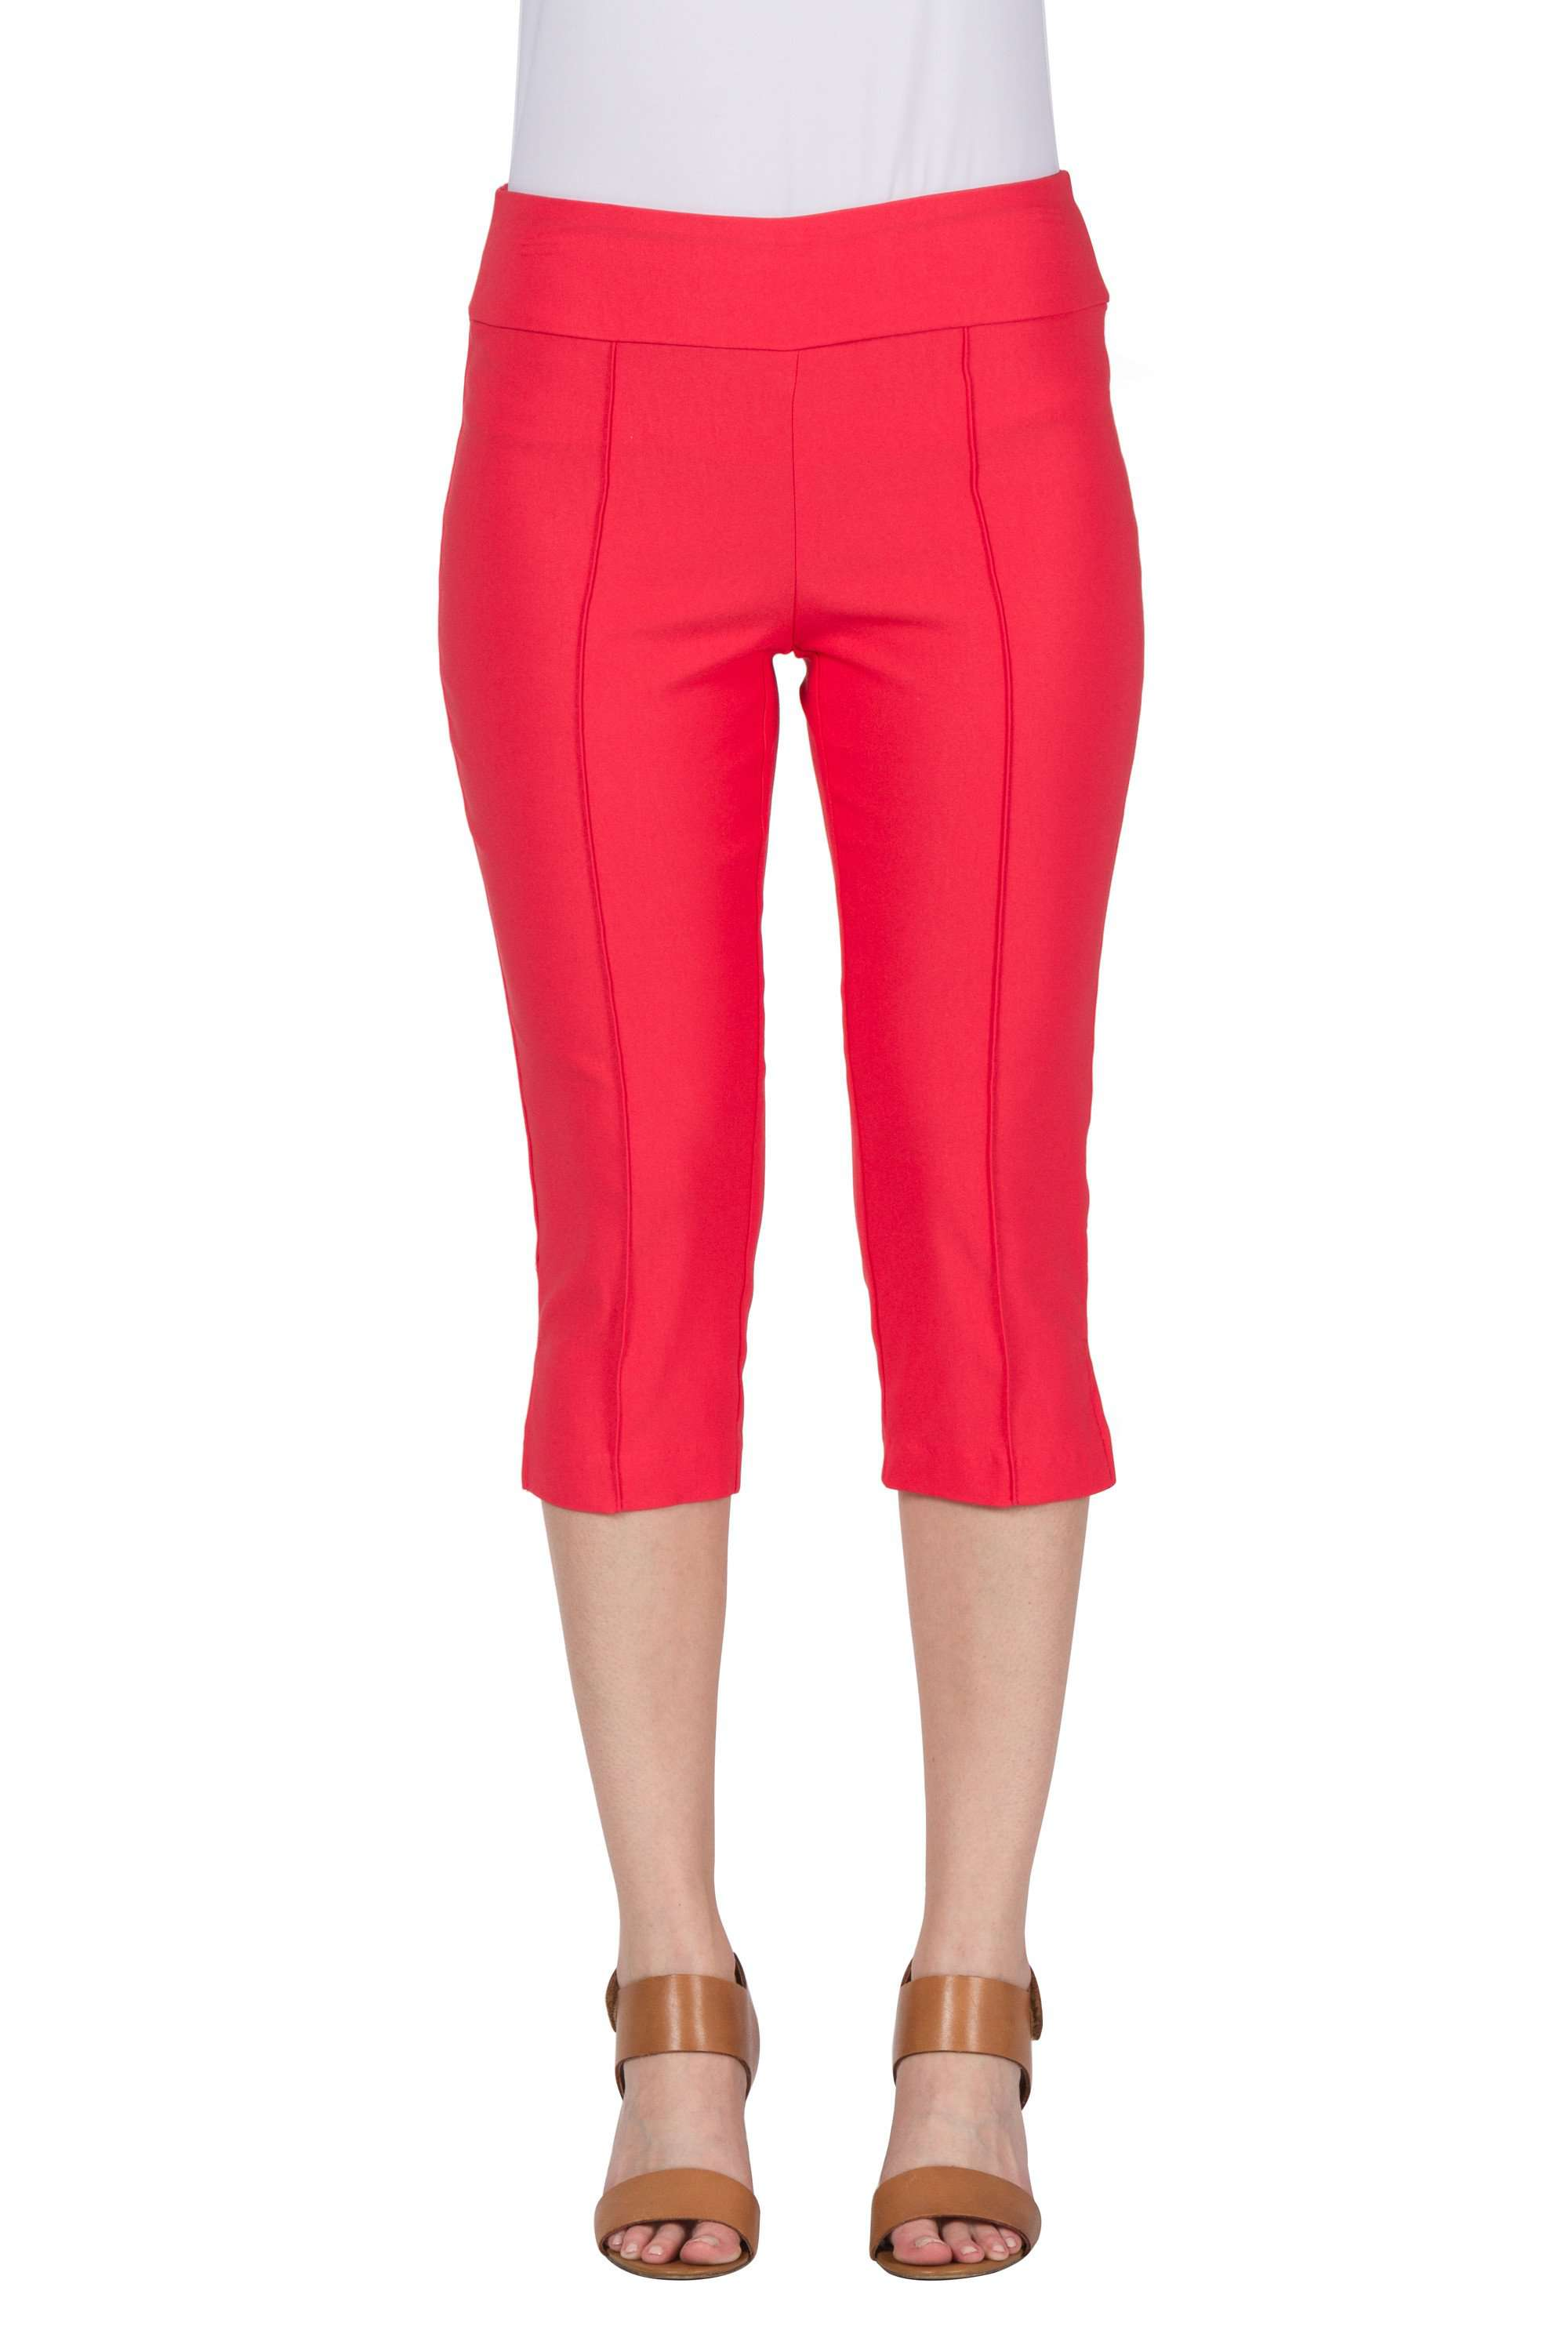 Cropped Pants Coral Stretch Fabric - Yvonne Marie